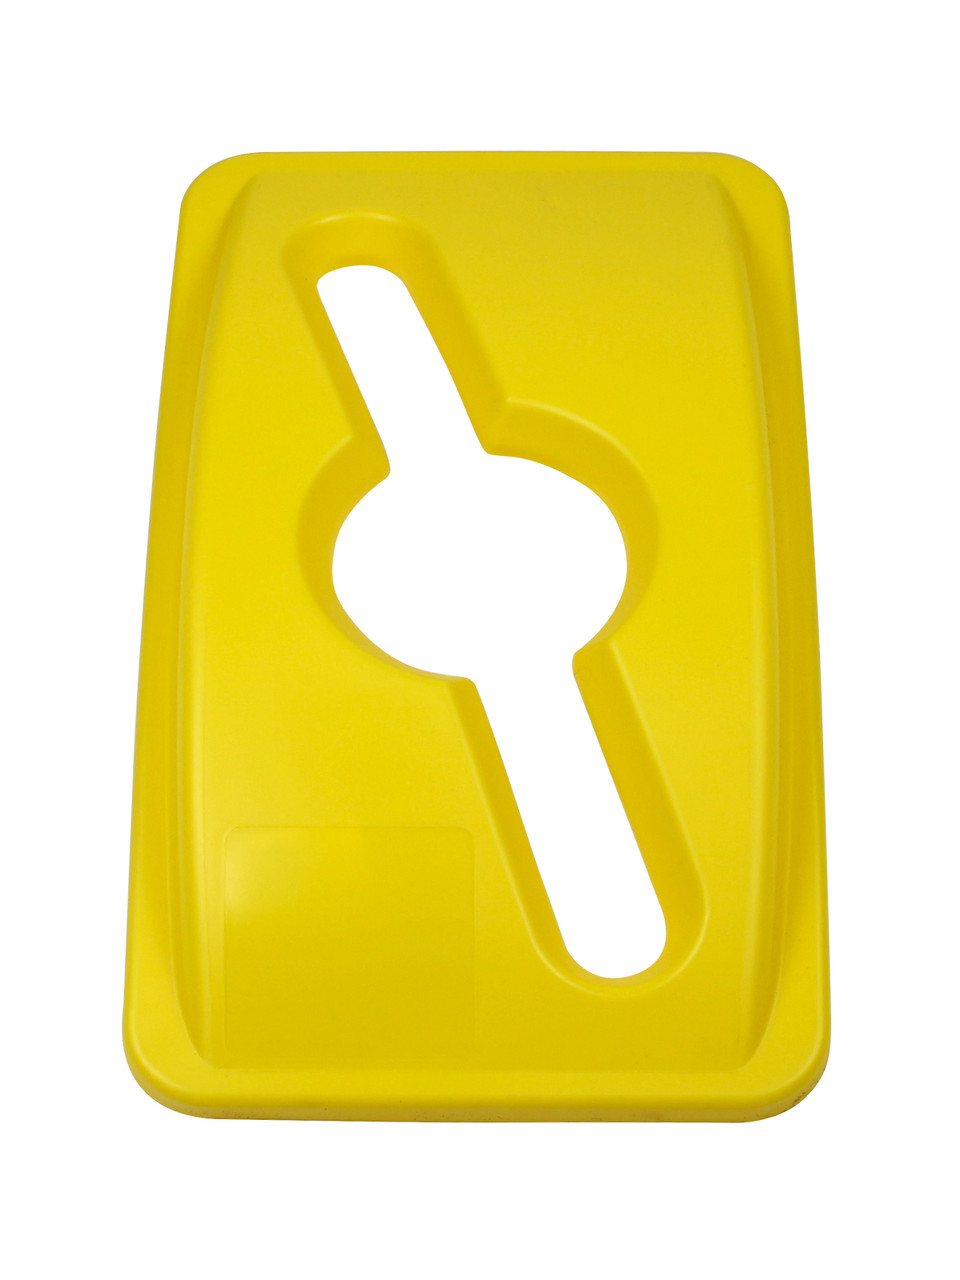 MIXED OPENING LID YELLOW